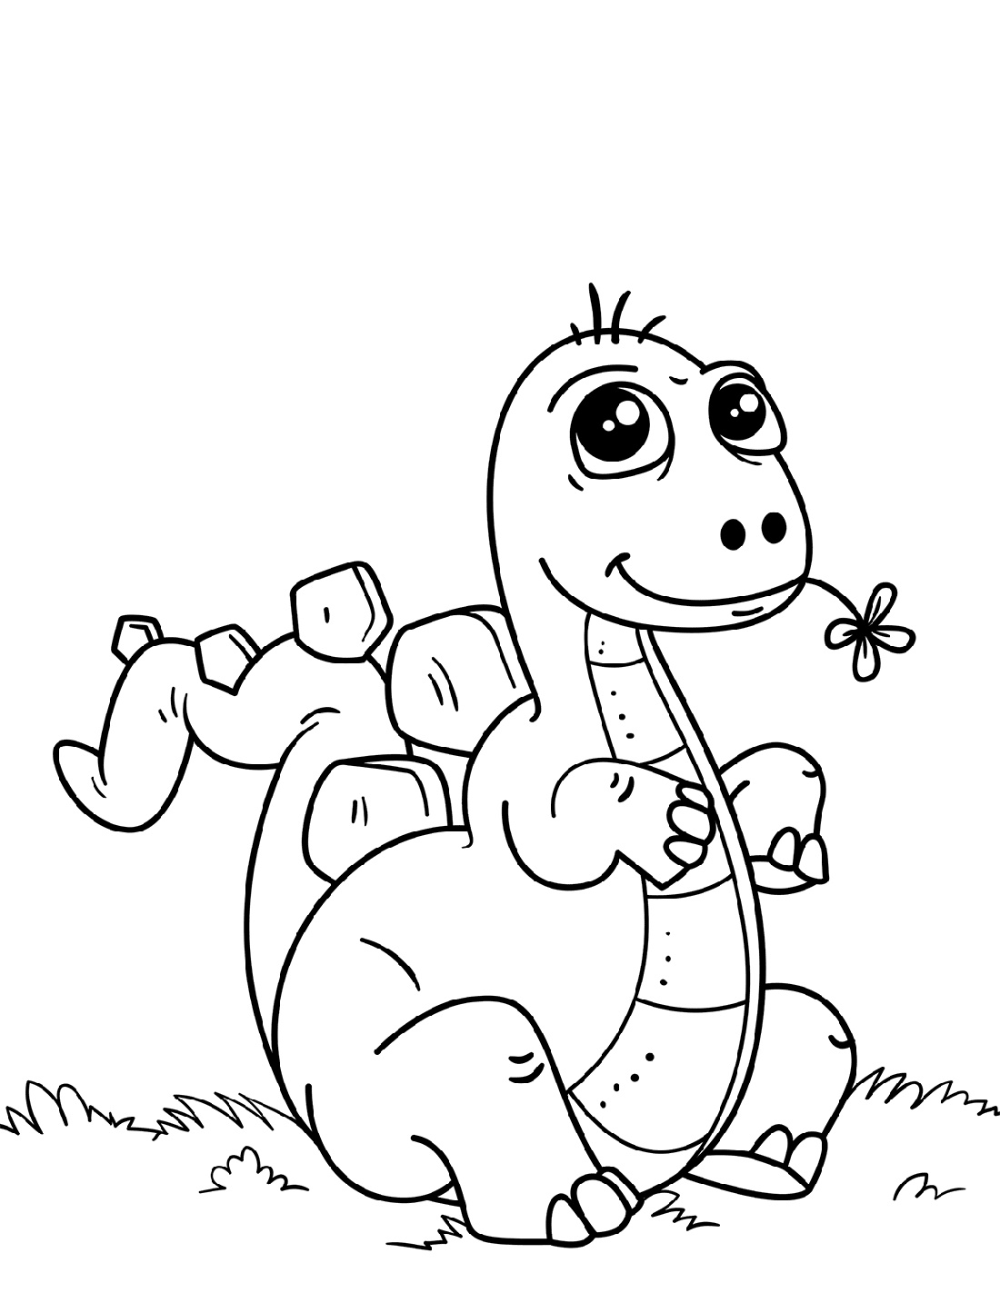 Baby Dinosaur Coloring Pages Printable Shelter